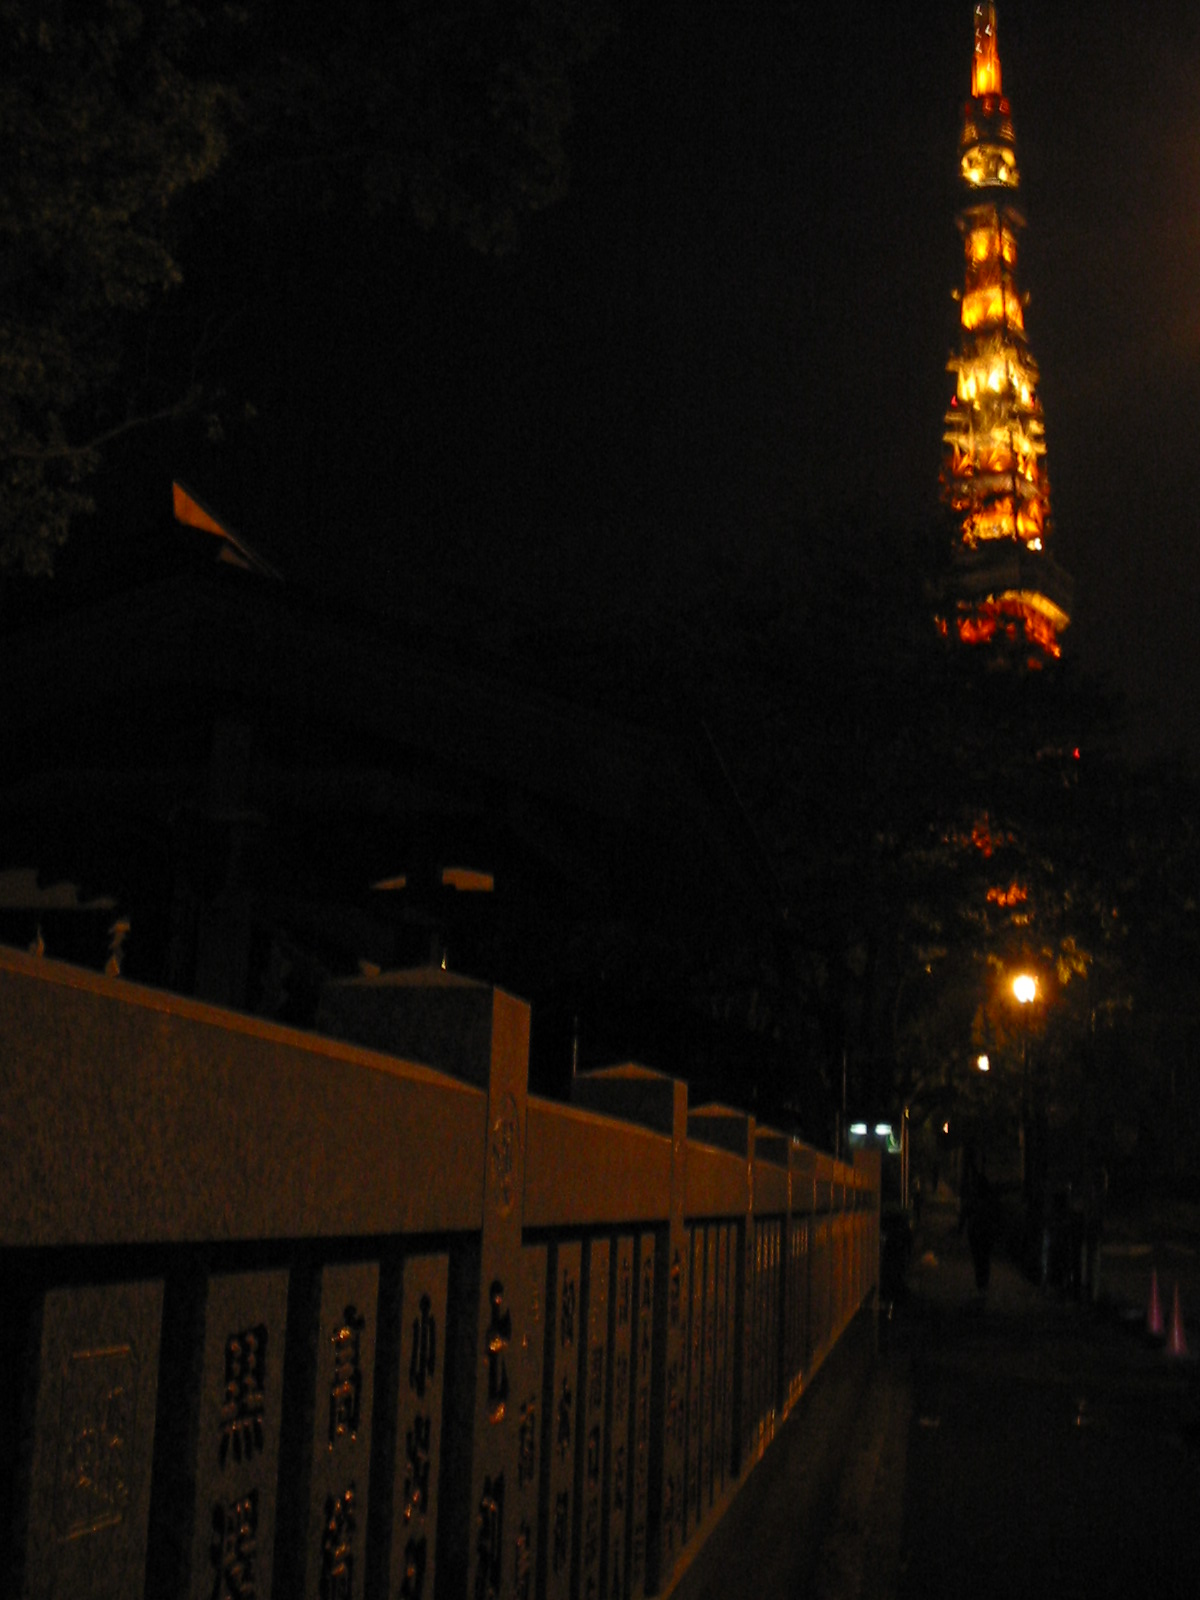 Tokyo - Tower 002